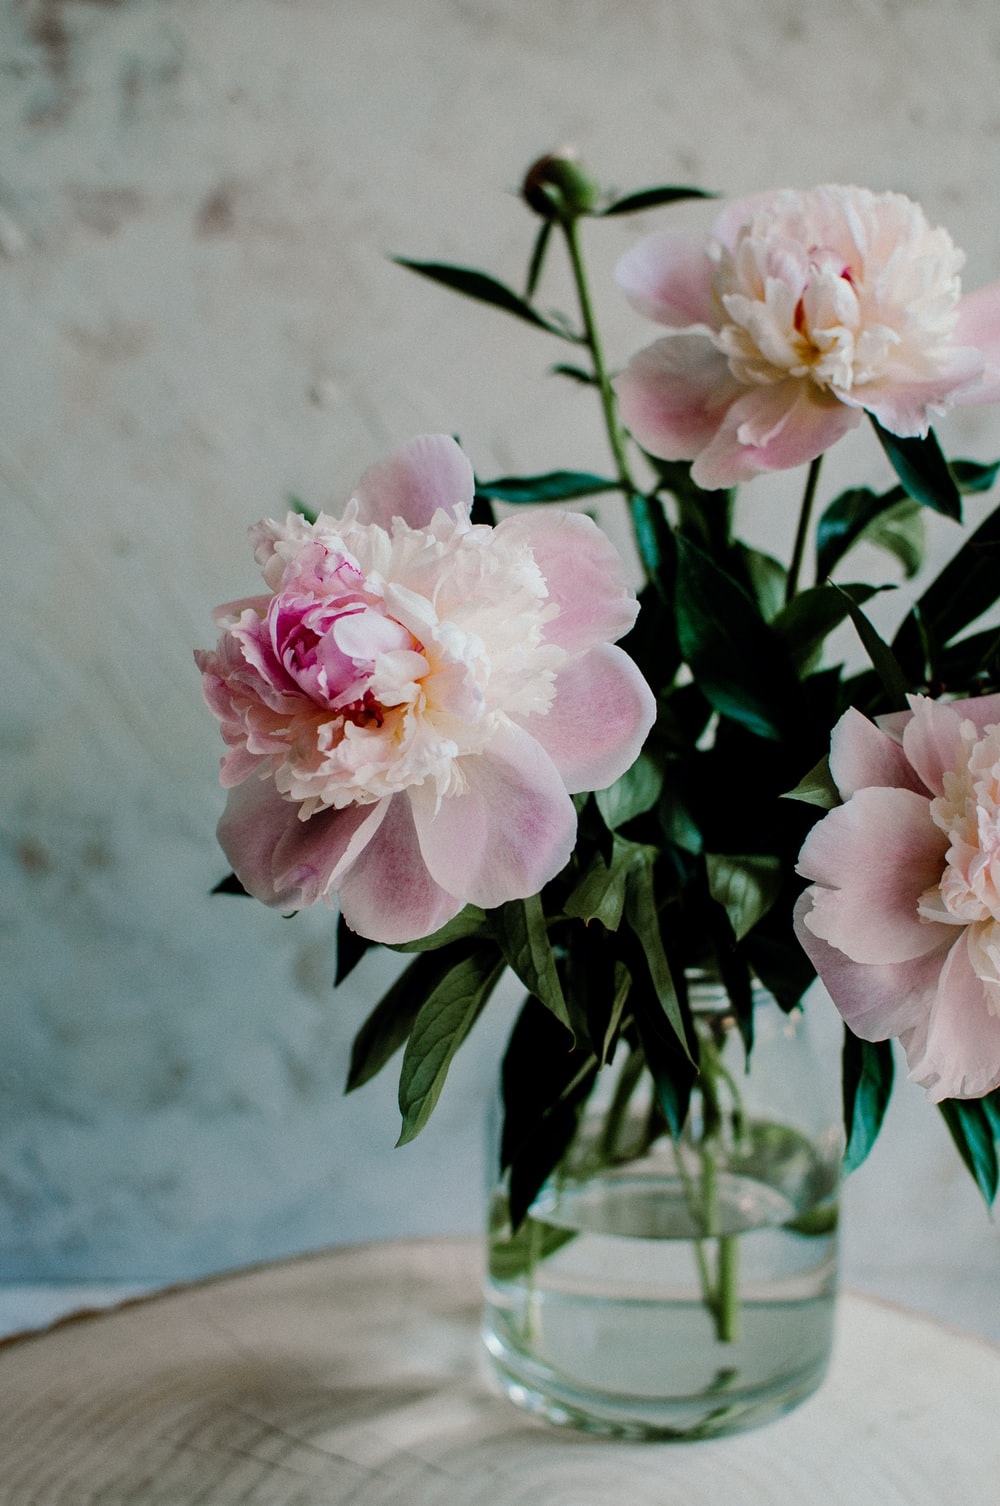 pink petaled flowers in clear glass vase